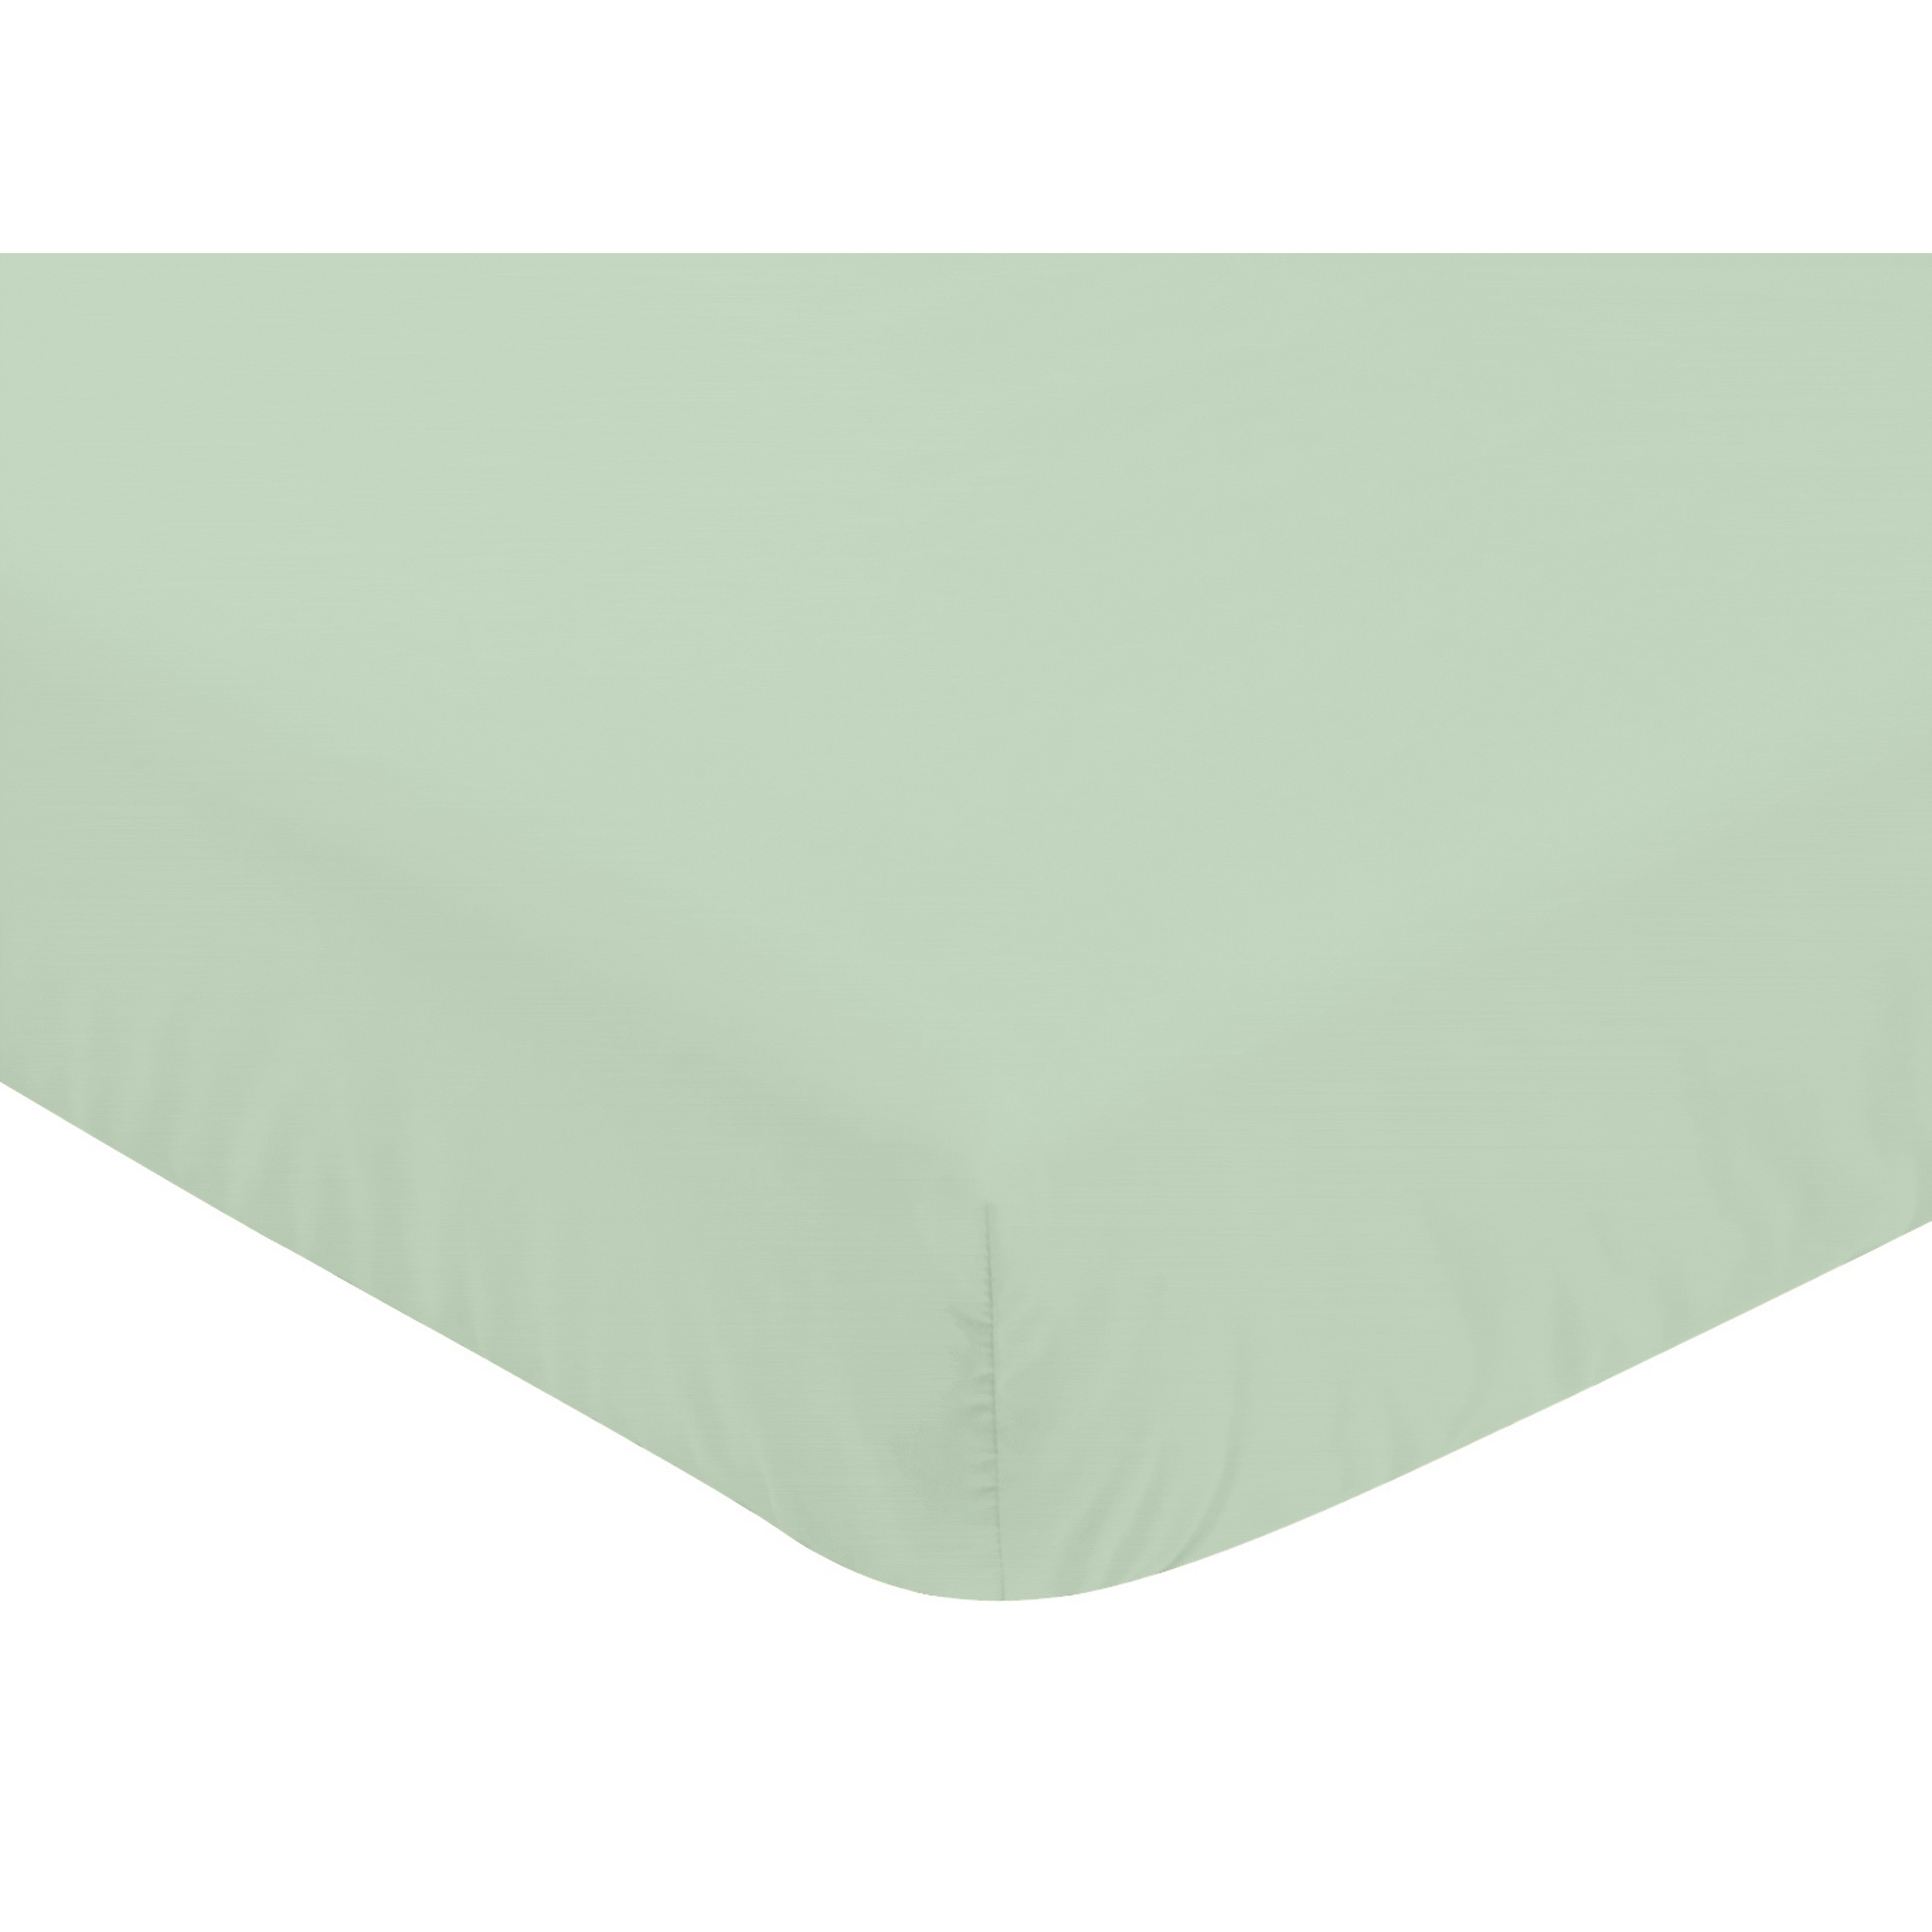 JoJo Designs Coral and Mint Mod Arrow Collection Mint Fitted Crib Sheet (Mint), Green (Microfiber, Solid Color)